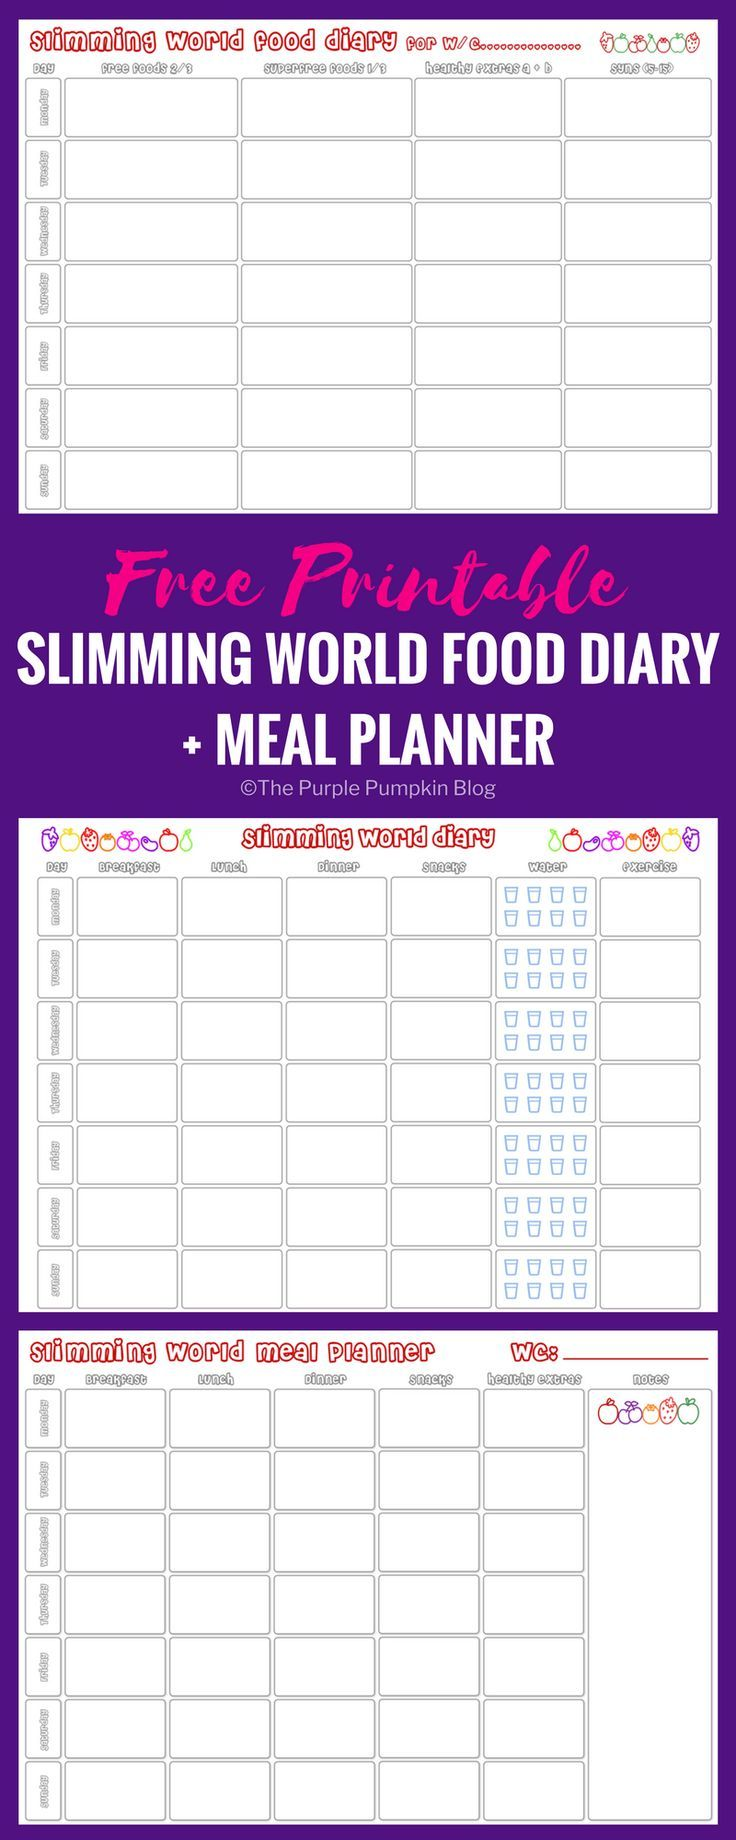 Slimming World Food Diary Printable + bonus Meal Planner! If you follow the Slimming World diet, then you need to download this FREE printable to help you keep track of your Free Foods, Healthy Extras, and Syns. The meal planner can help you plan your breakfast, lunch, and dinner in advance so that you can stay the course.